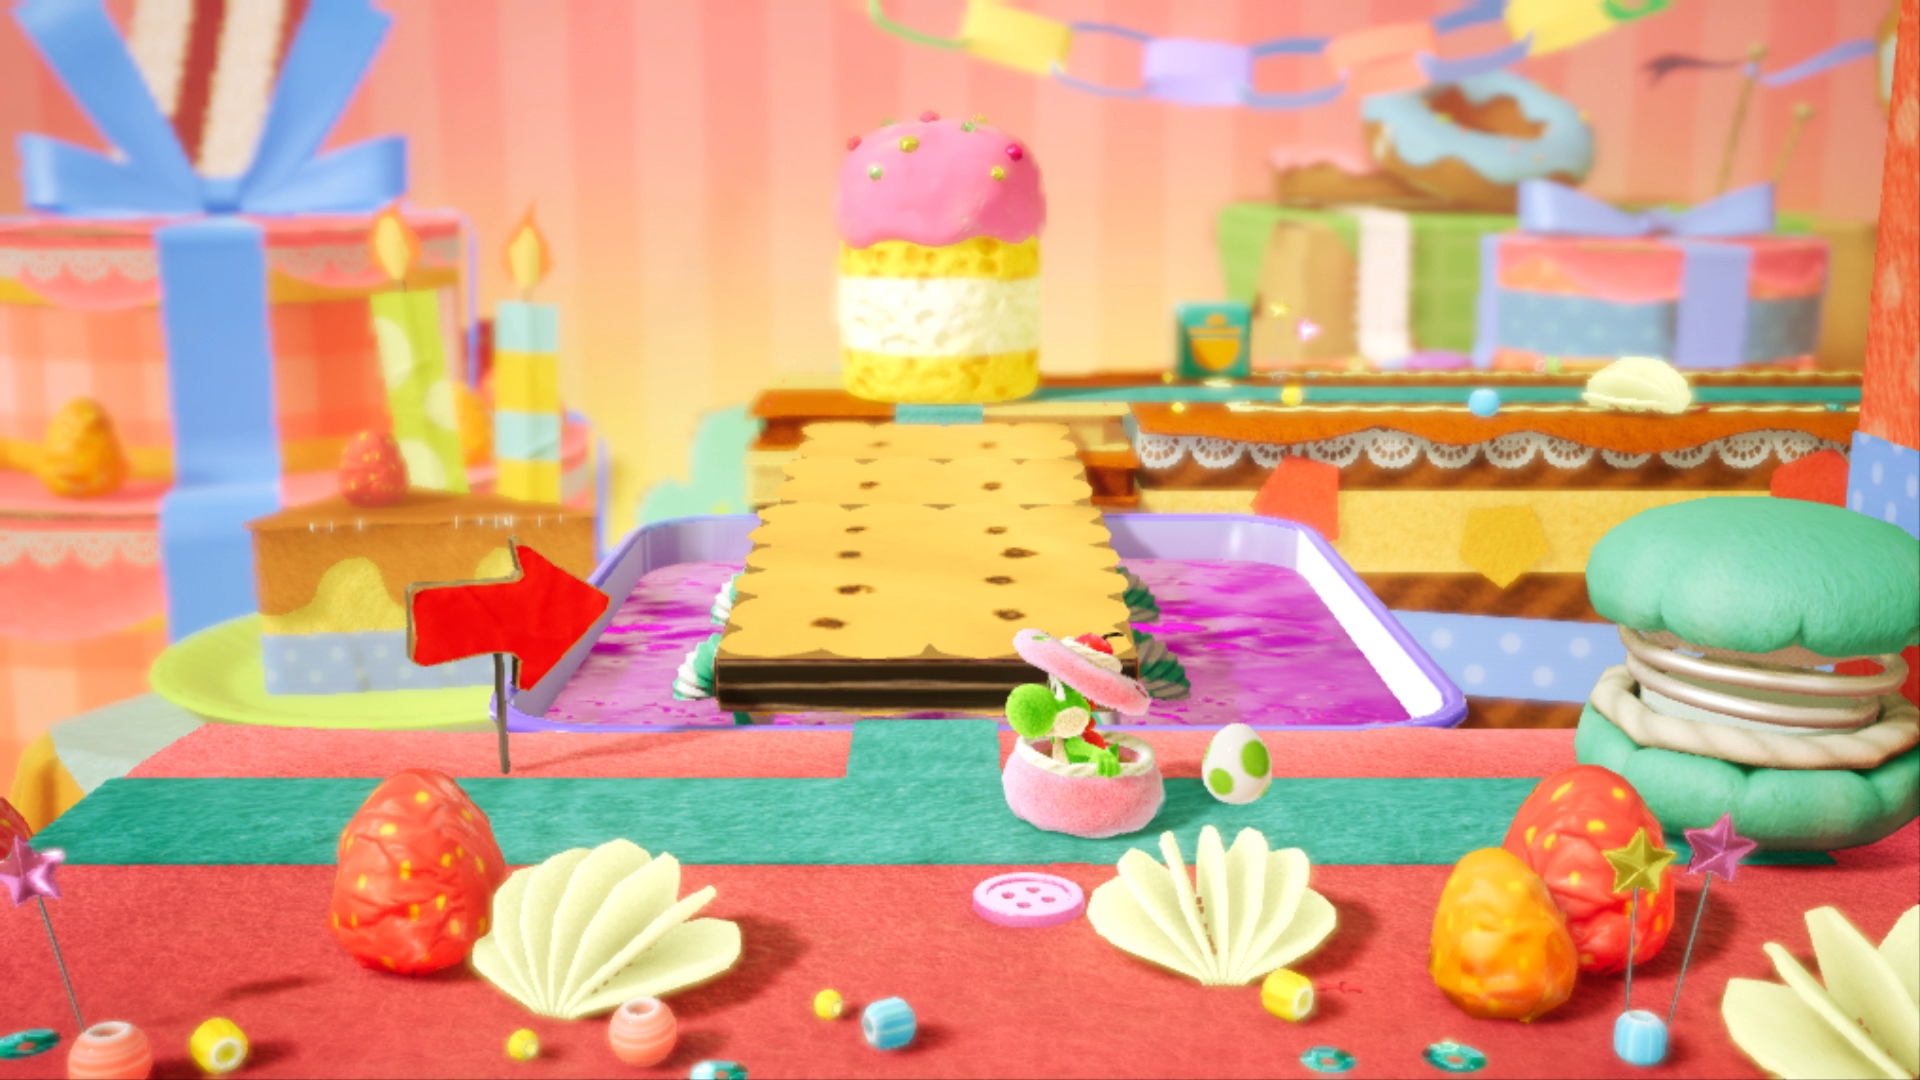 Yoshi's Crafted World (NS) - it's a bit of a cakewalk